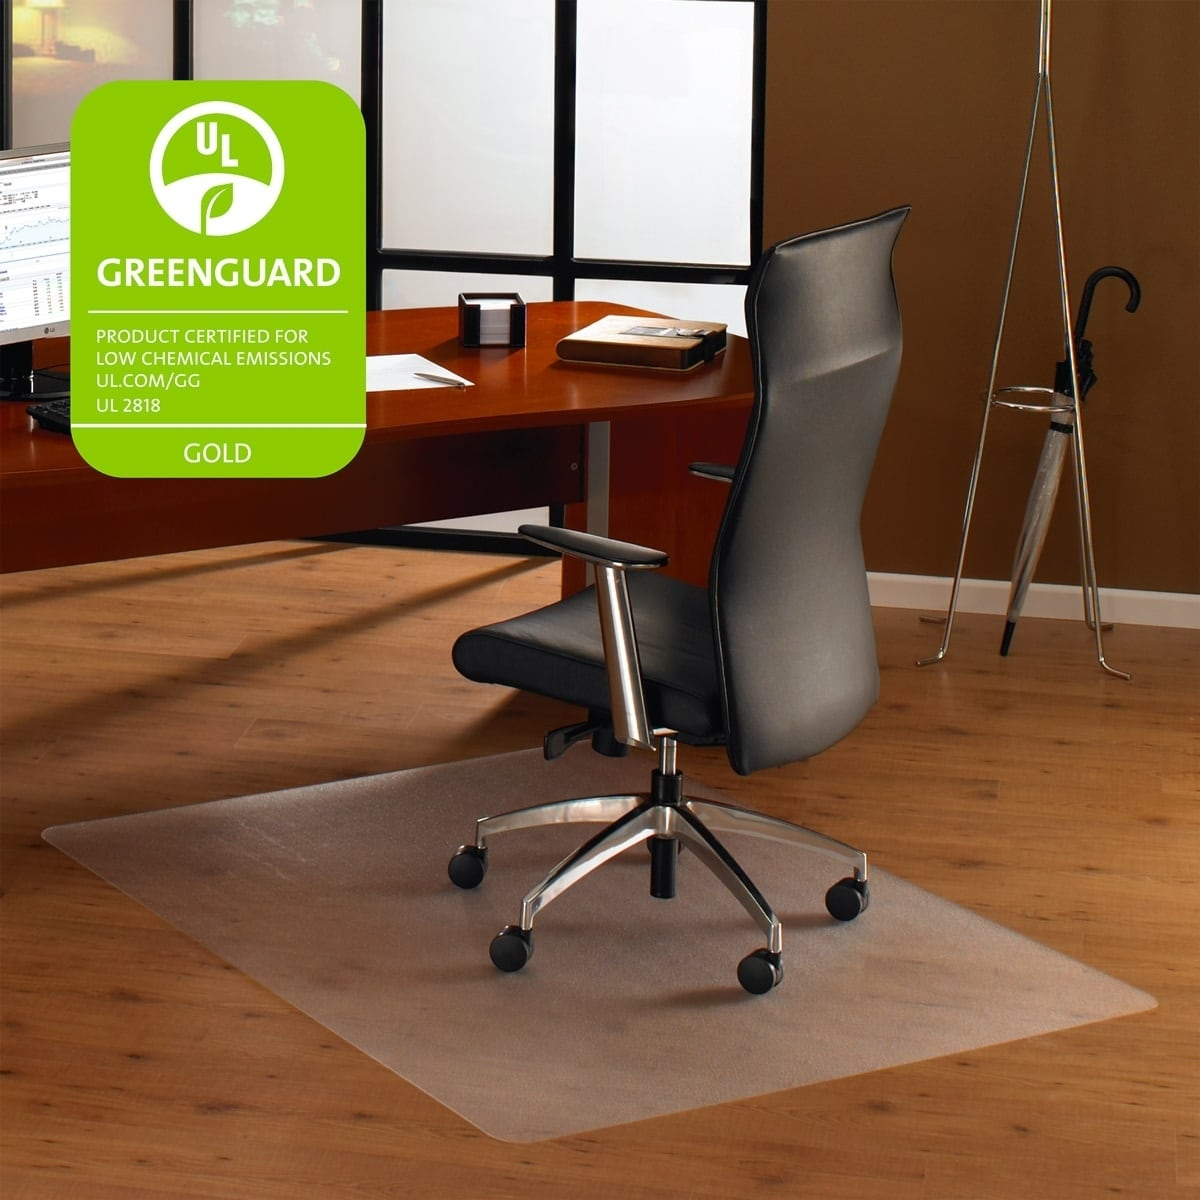 Cleartex Ultimat Chair Mat Square Clear Polycarbonate For Hard Floors Size 48 X